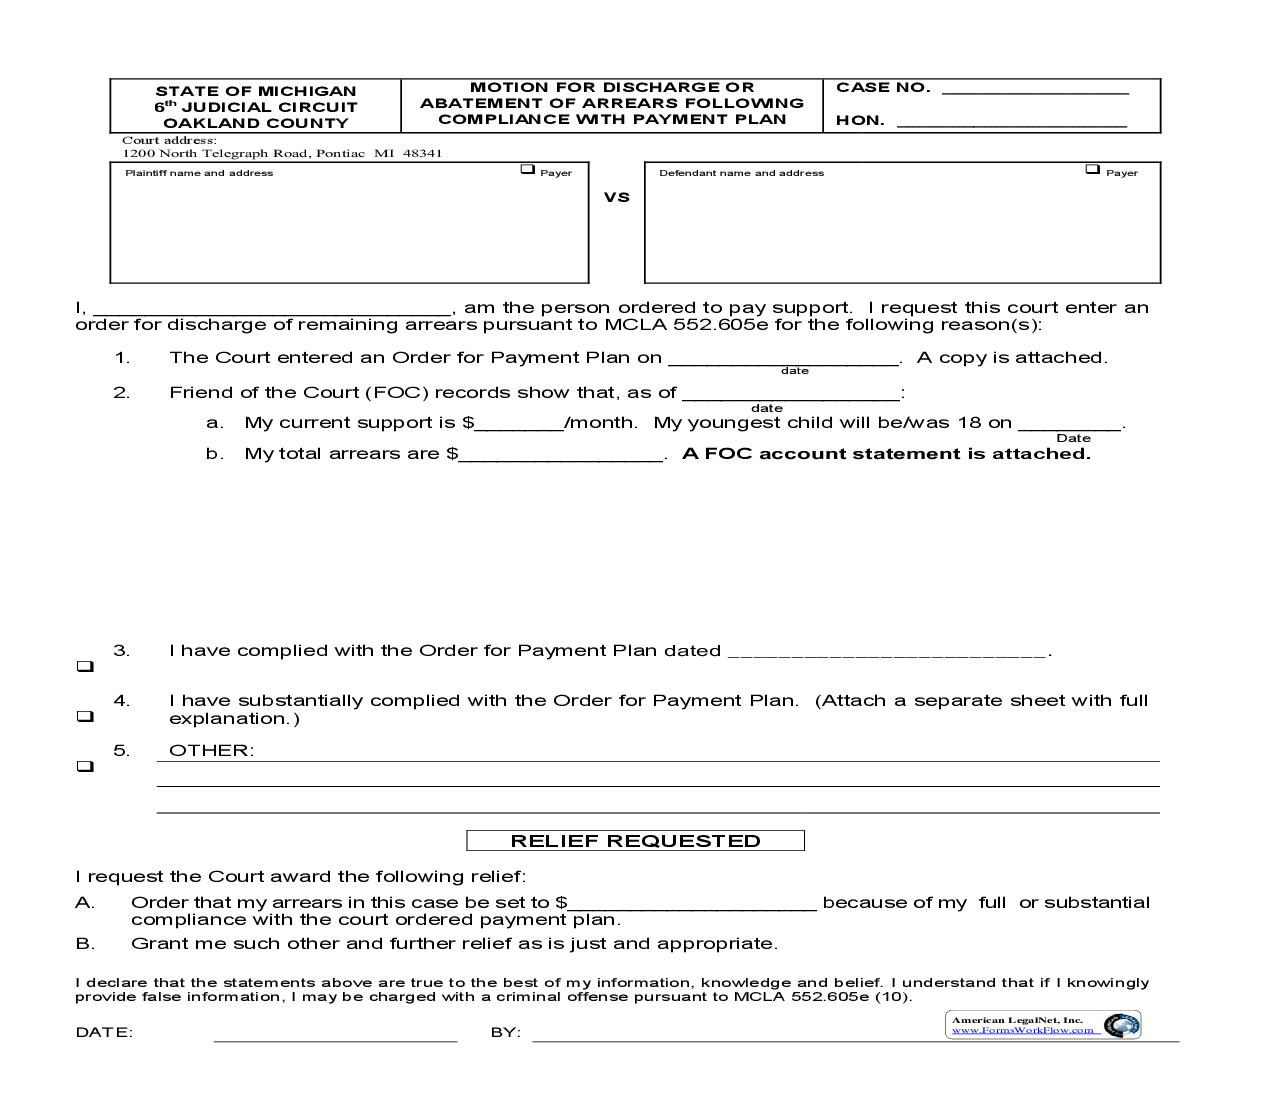 Motion For Discharge Or Abatement Of Arrears Following compliance With Payment Plan | Pdf Fpdf Doc Docx | Michigan